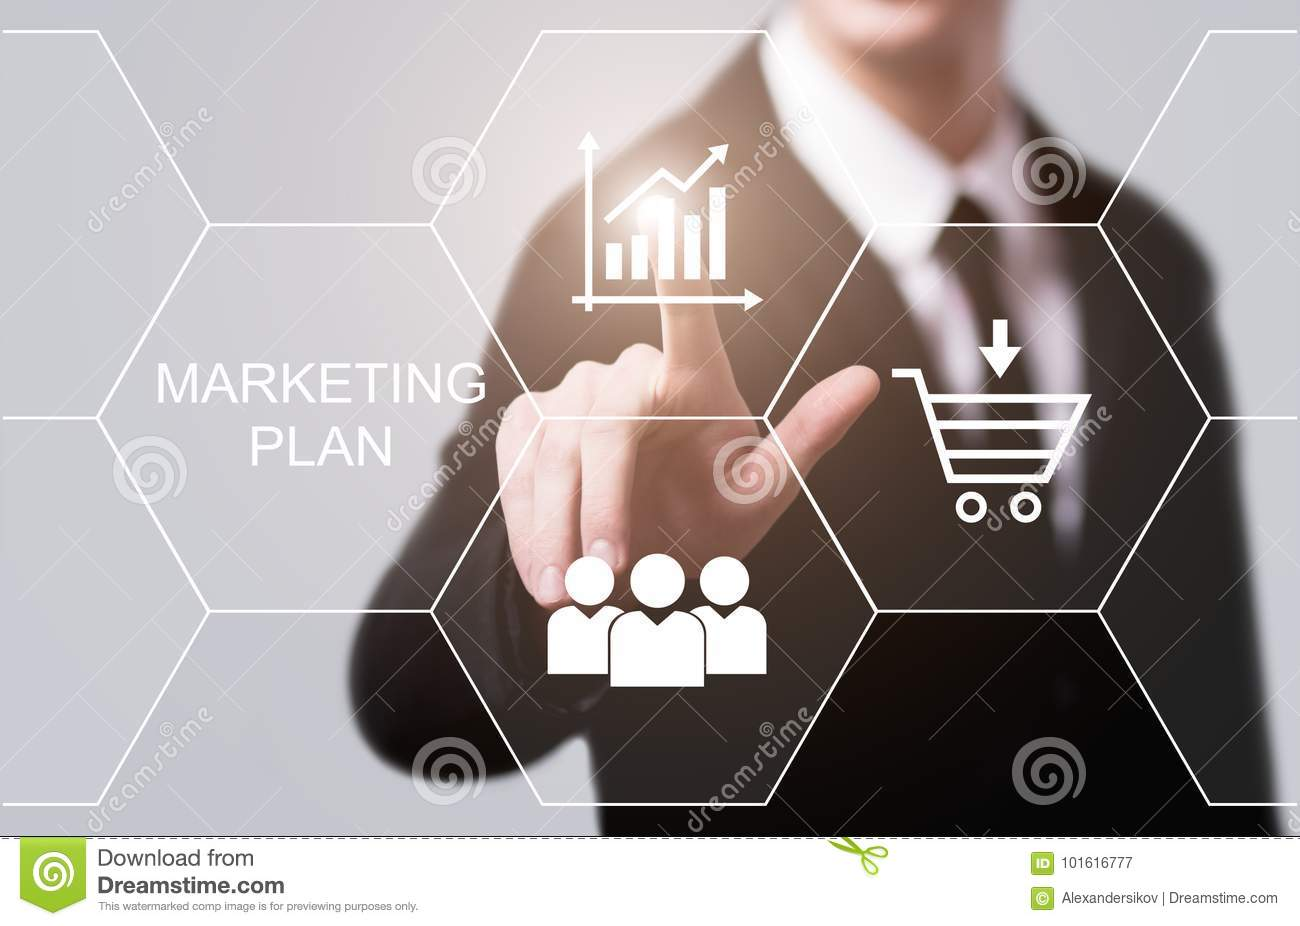 Marketing Plan Business Advertising Strategy Promotion concept